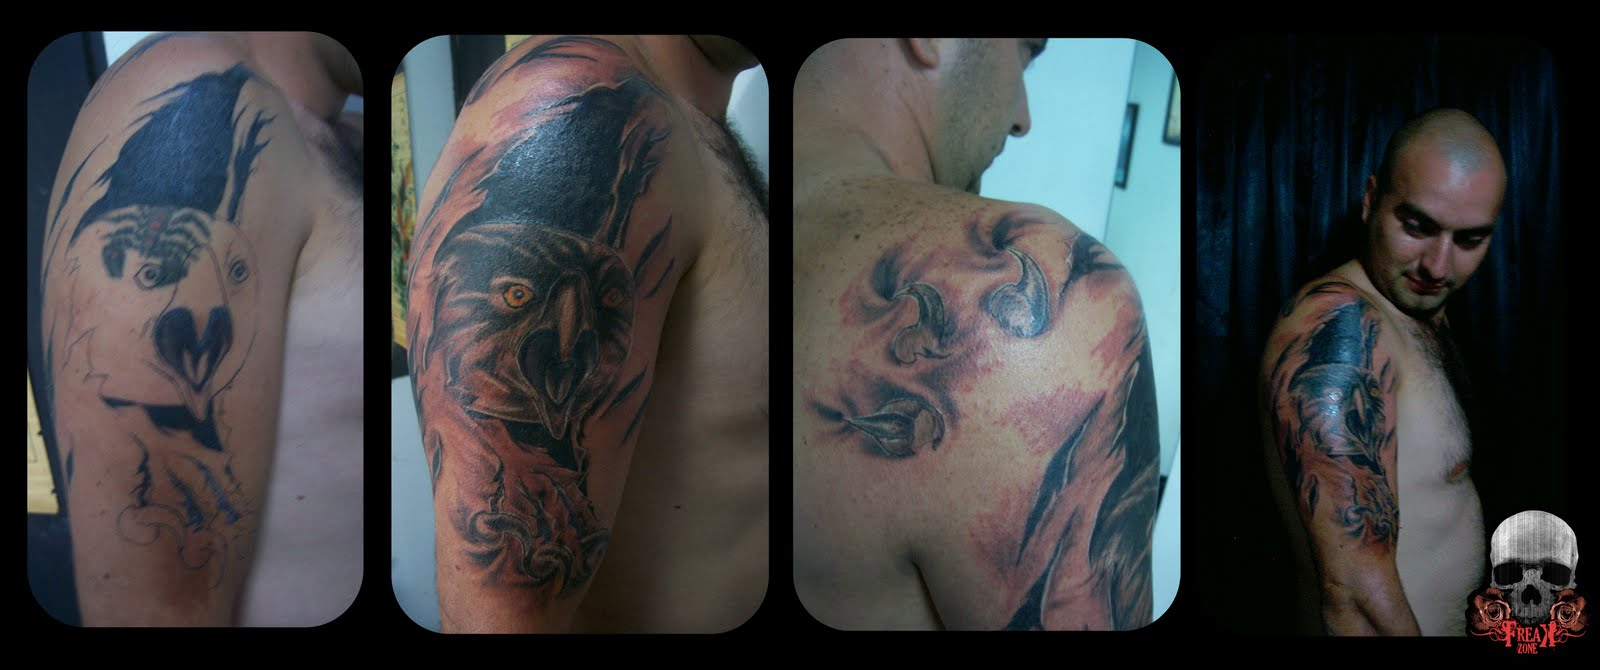 Tattoo Cover up Aguila